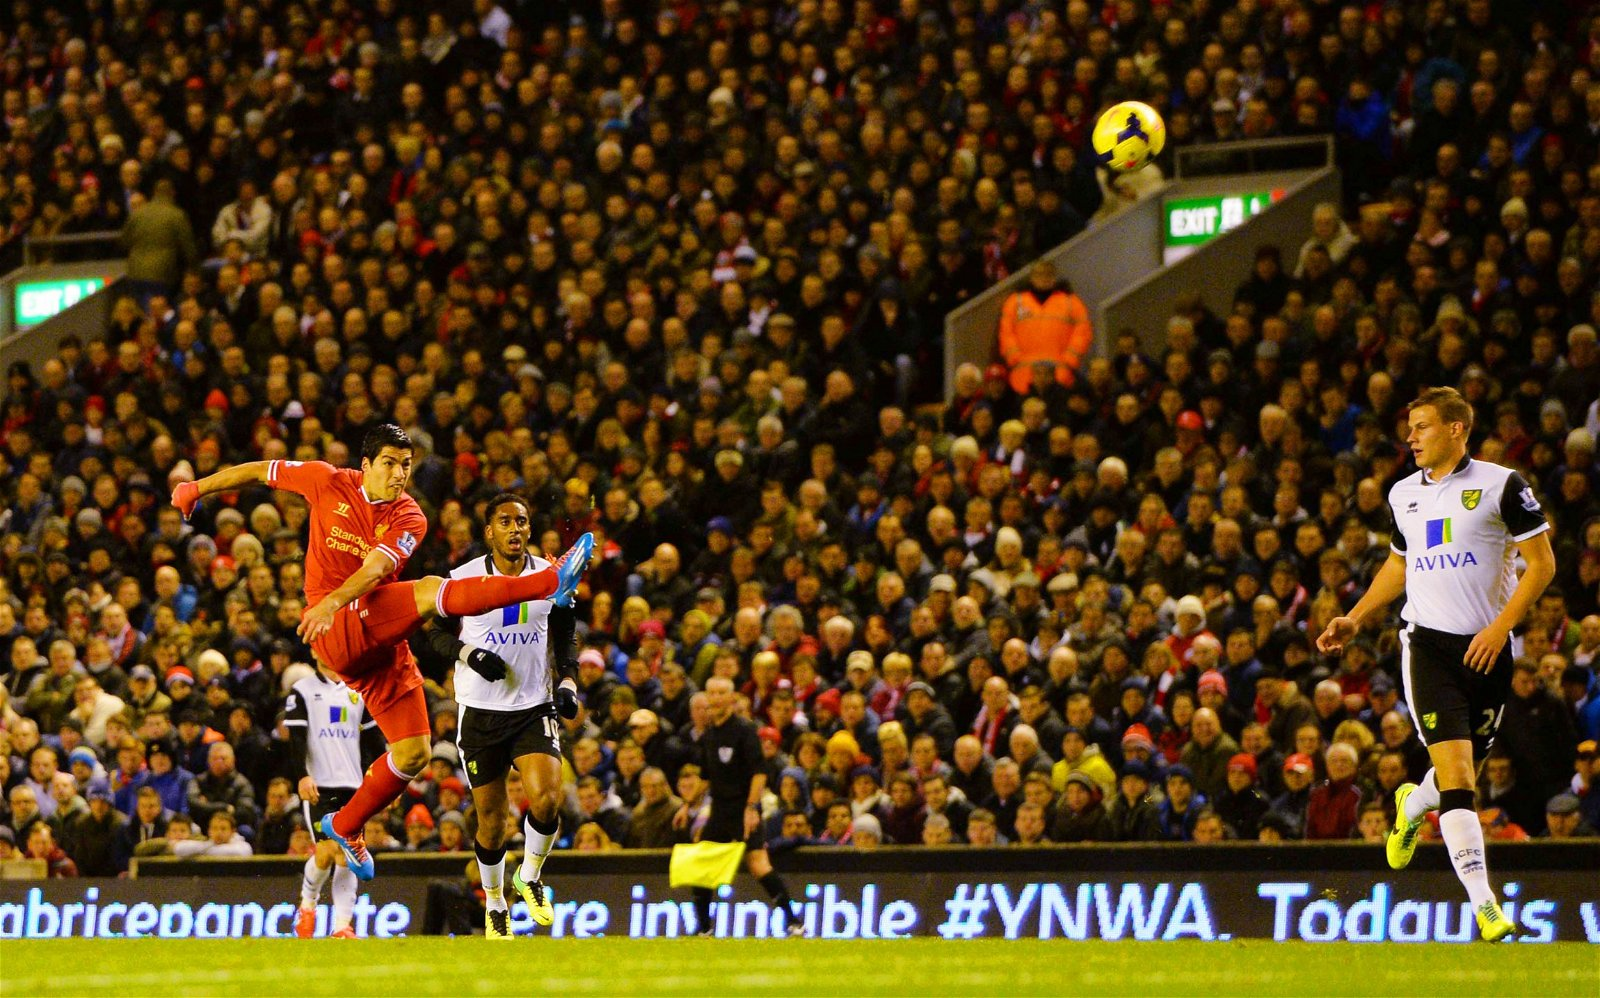 Luis Suarez scores an incredible goal vs Norwich